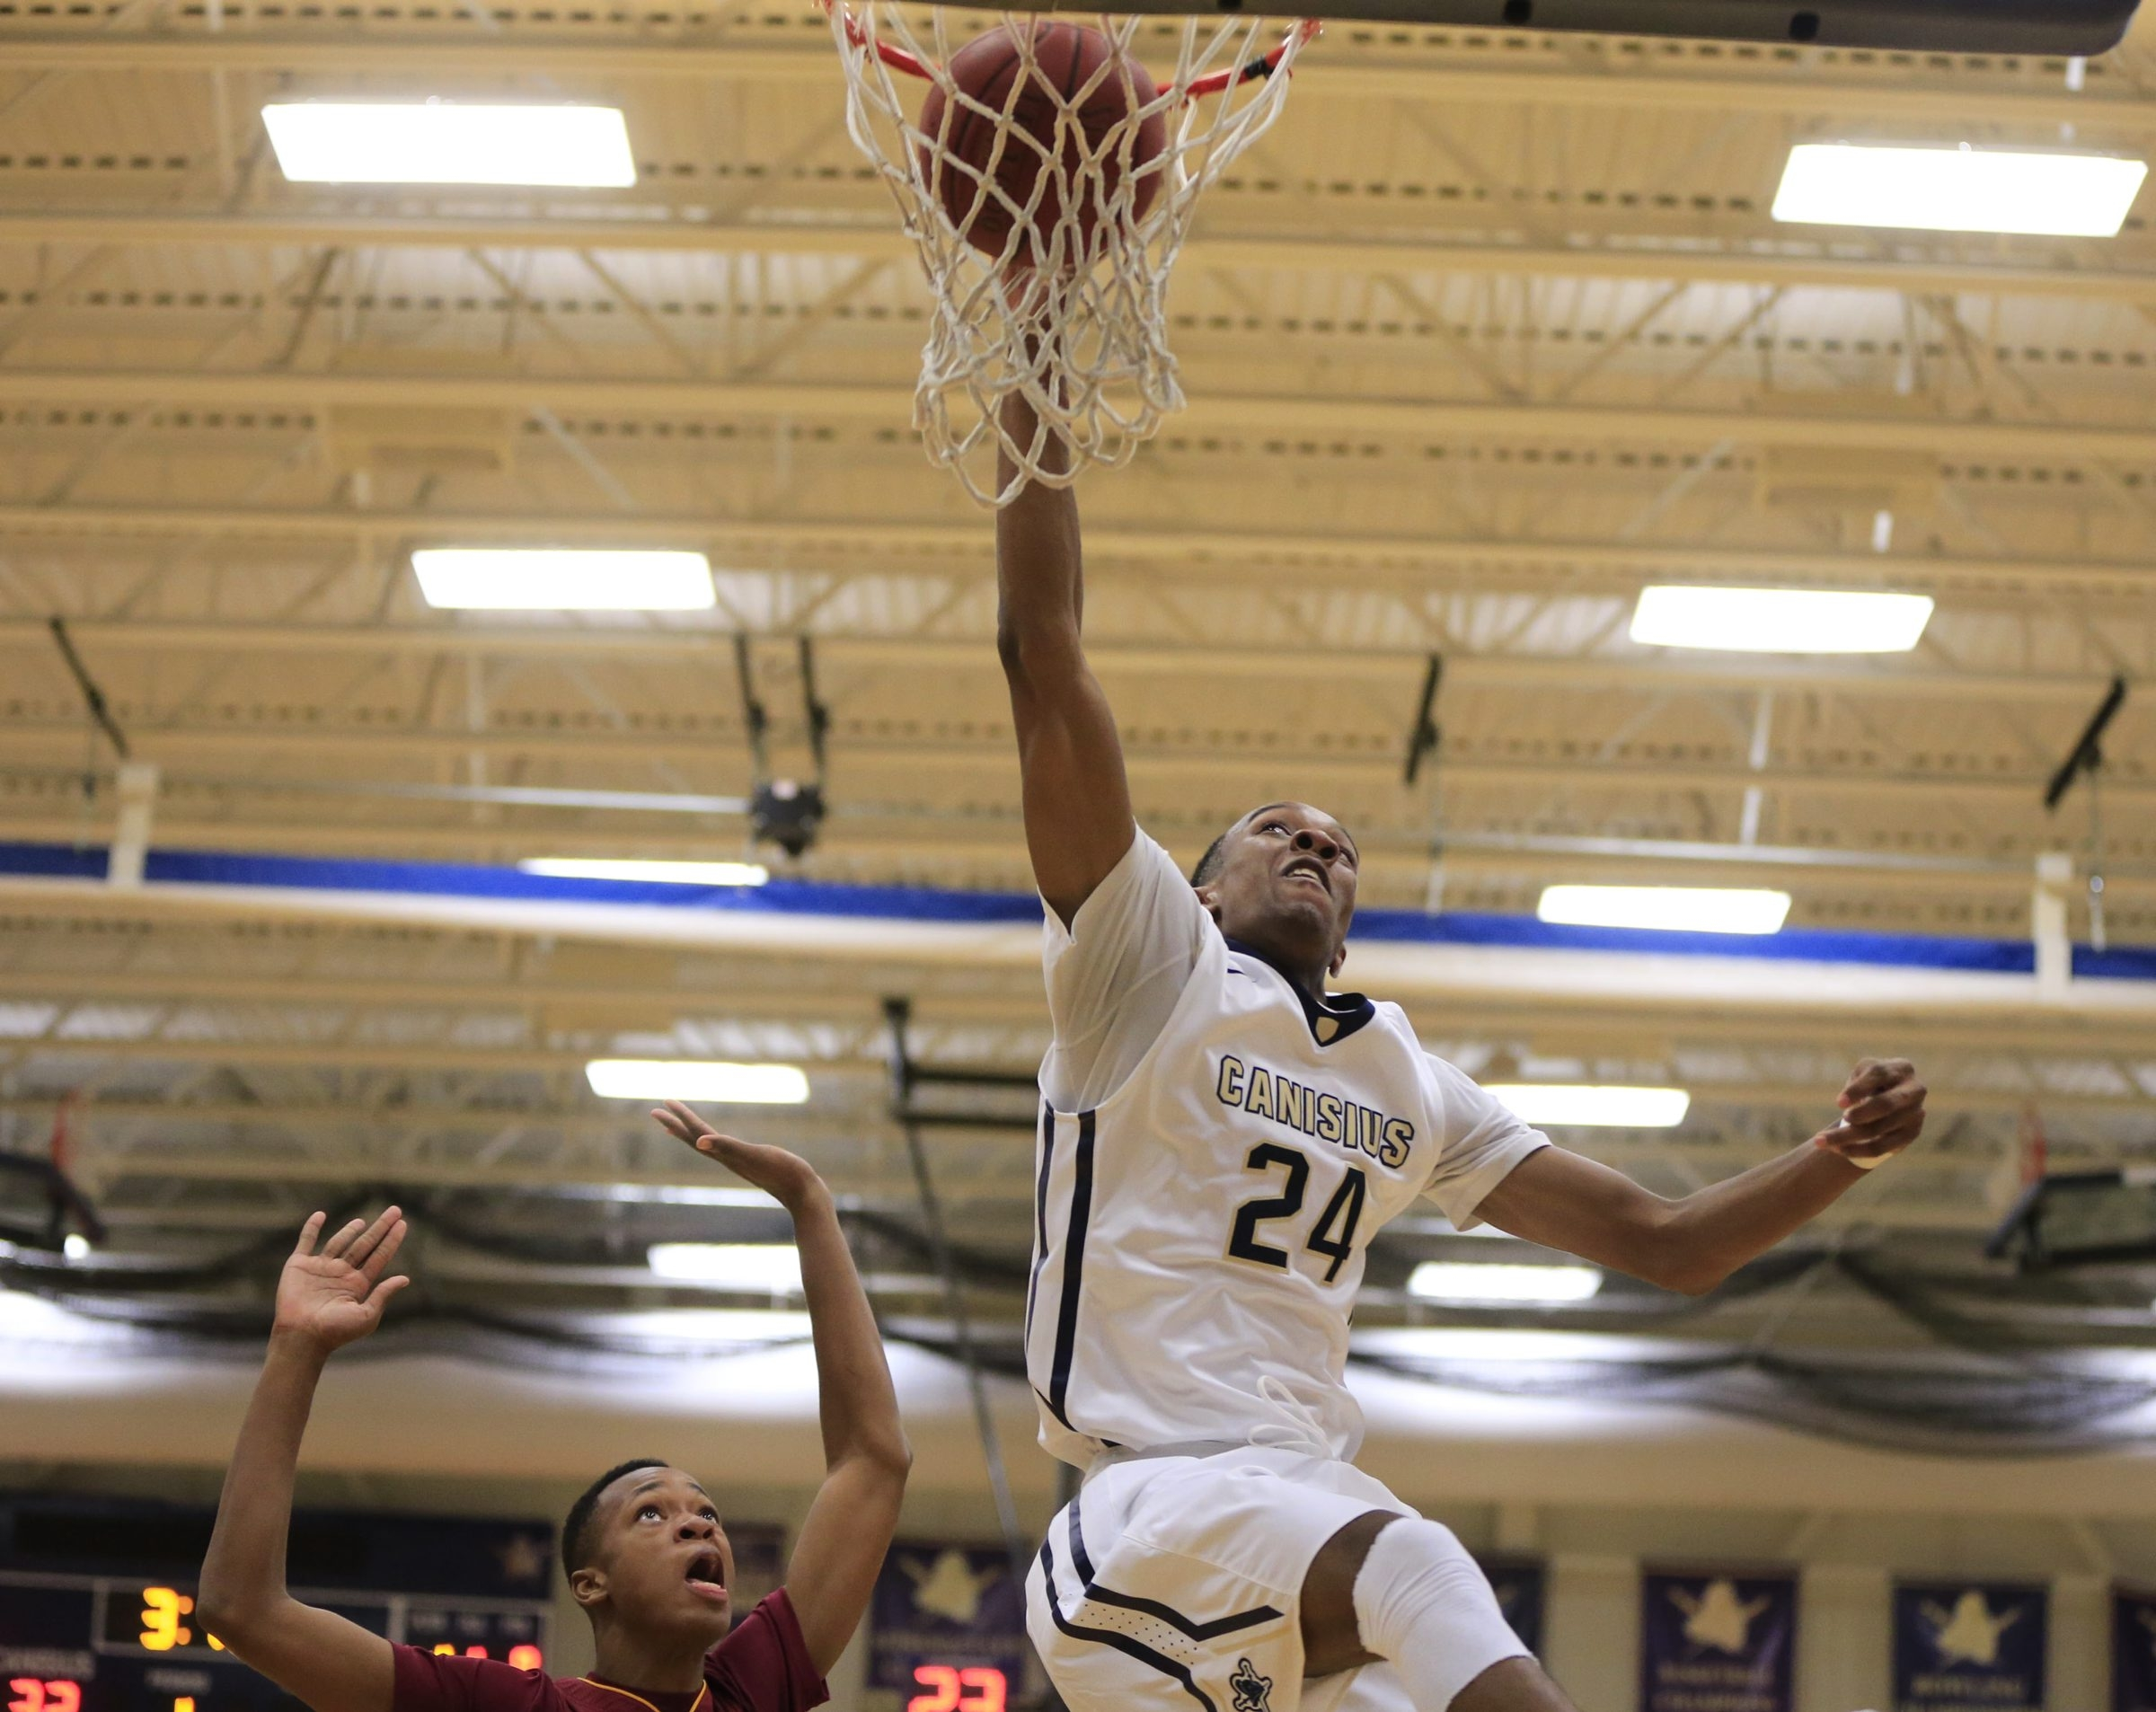 Stafford Trueheart dunks for two of his game-high 23 points as Canisius defeated Nazareth in the Tom Keenan Classic.